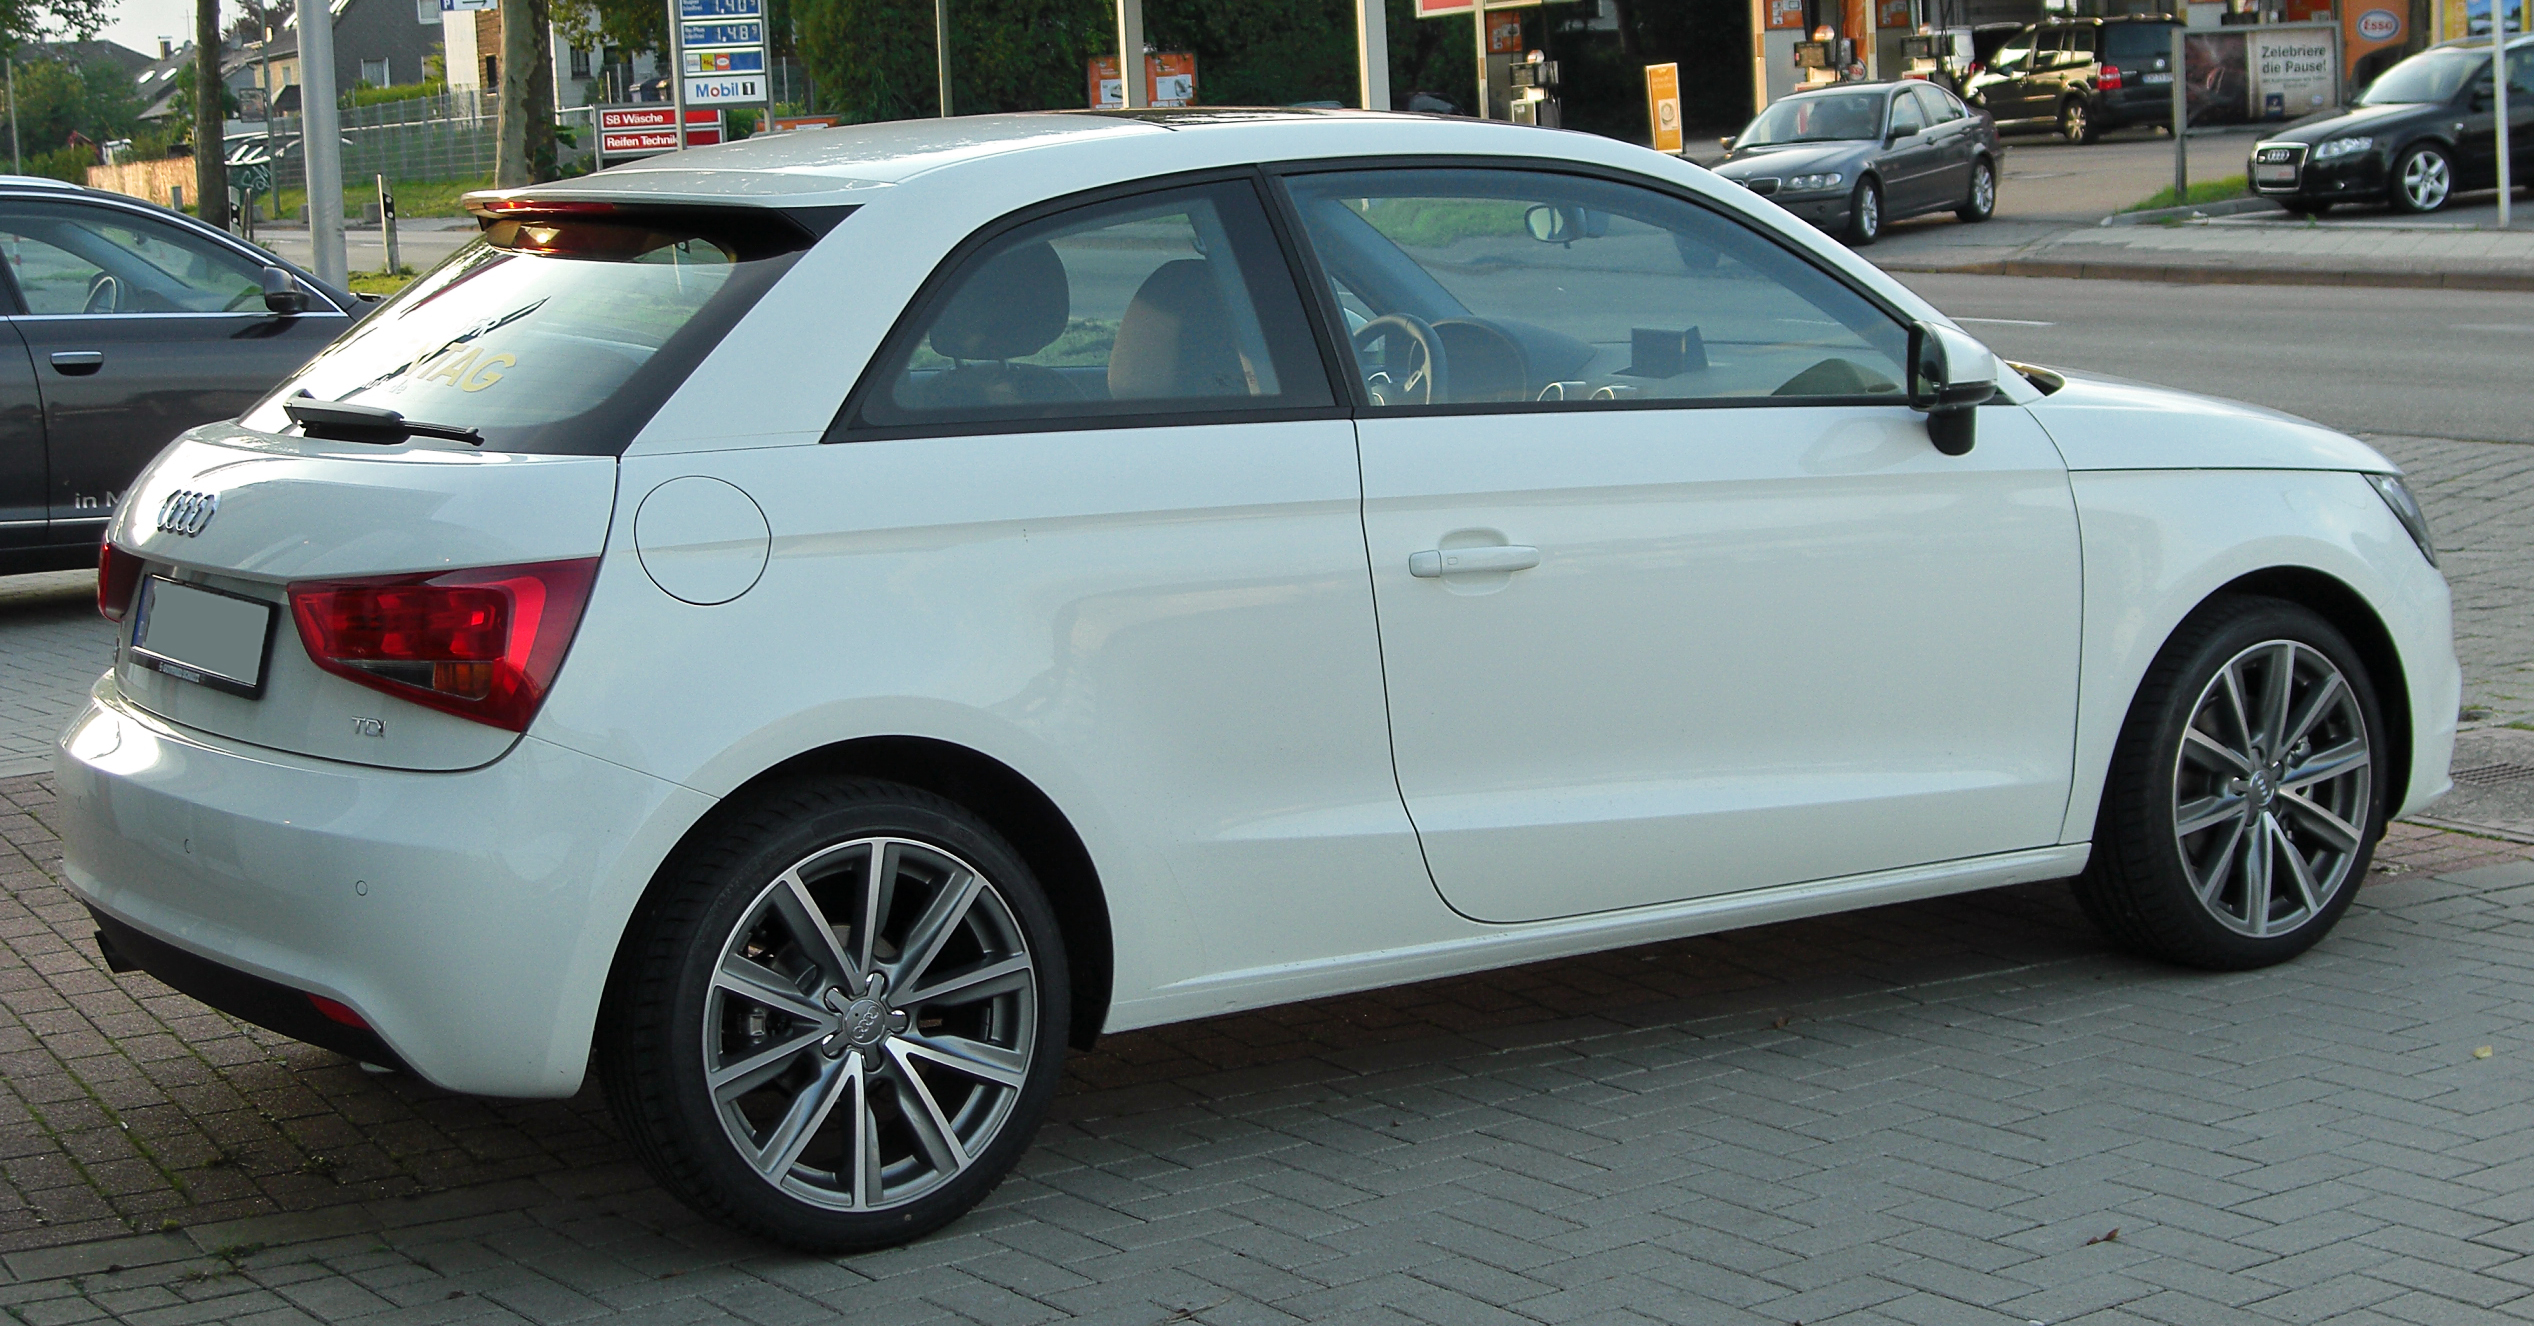 audi a1 1 6 tdi technical details history photos on better parts ltd. Black Bedroom Furniture Sets. Home Design Ideas